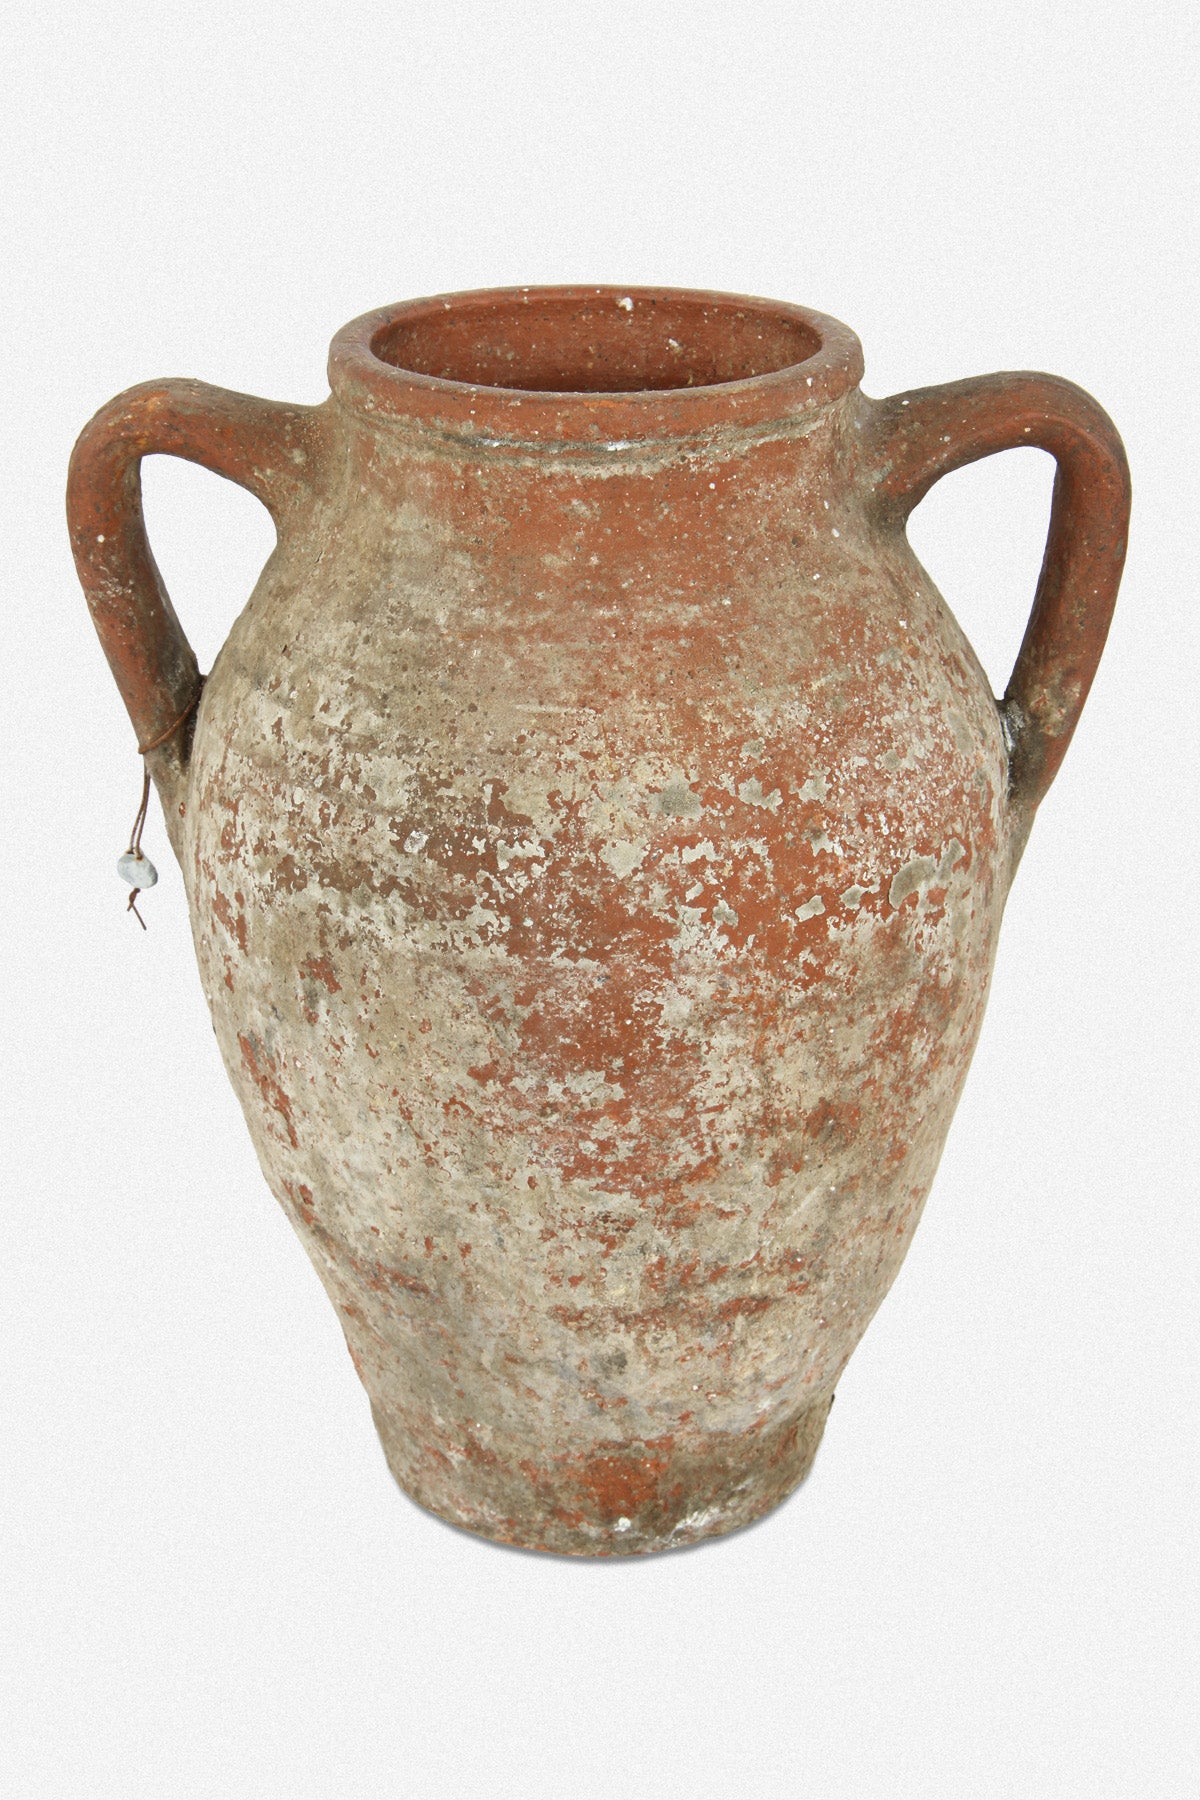 ANTIQUE TURKISH OLIVE POT - Fortune Goods